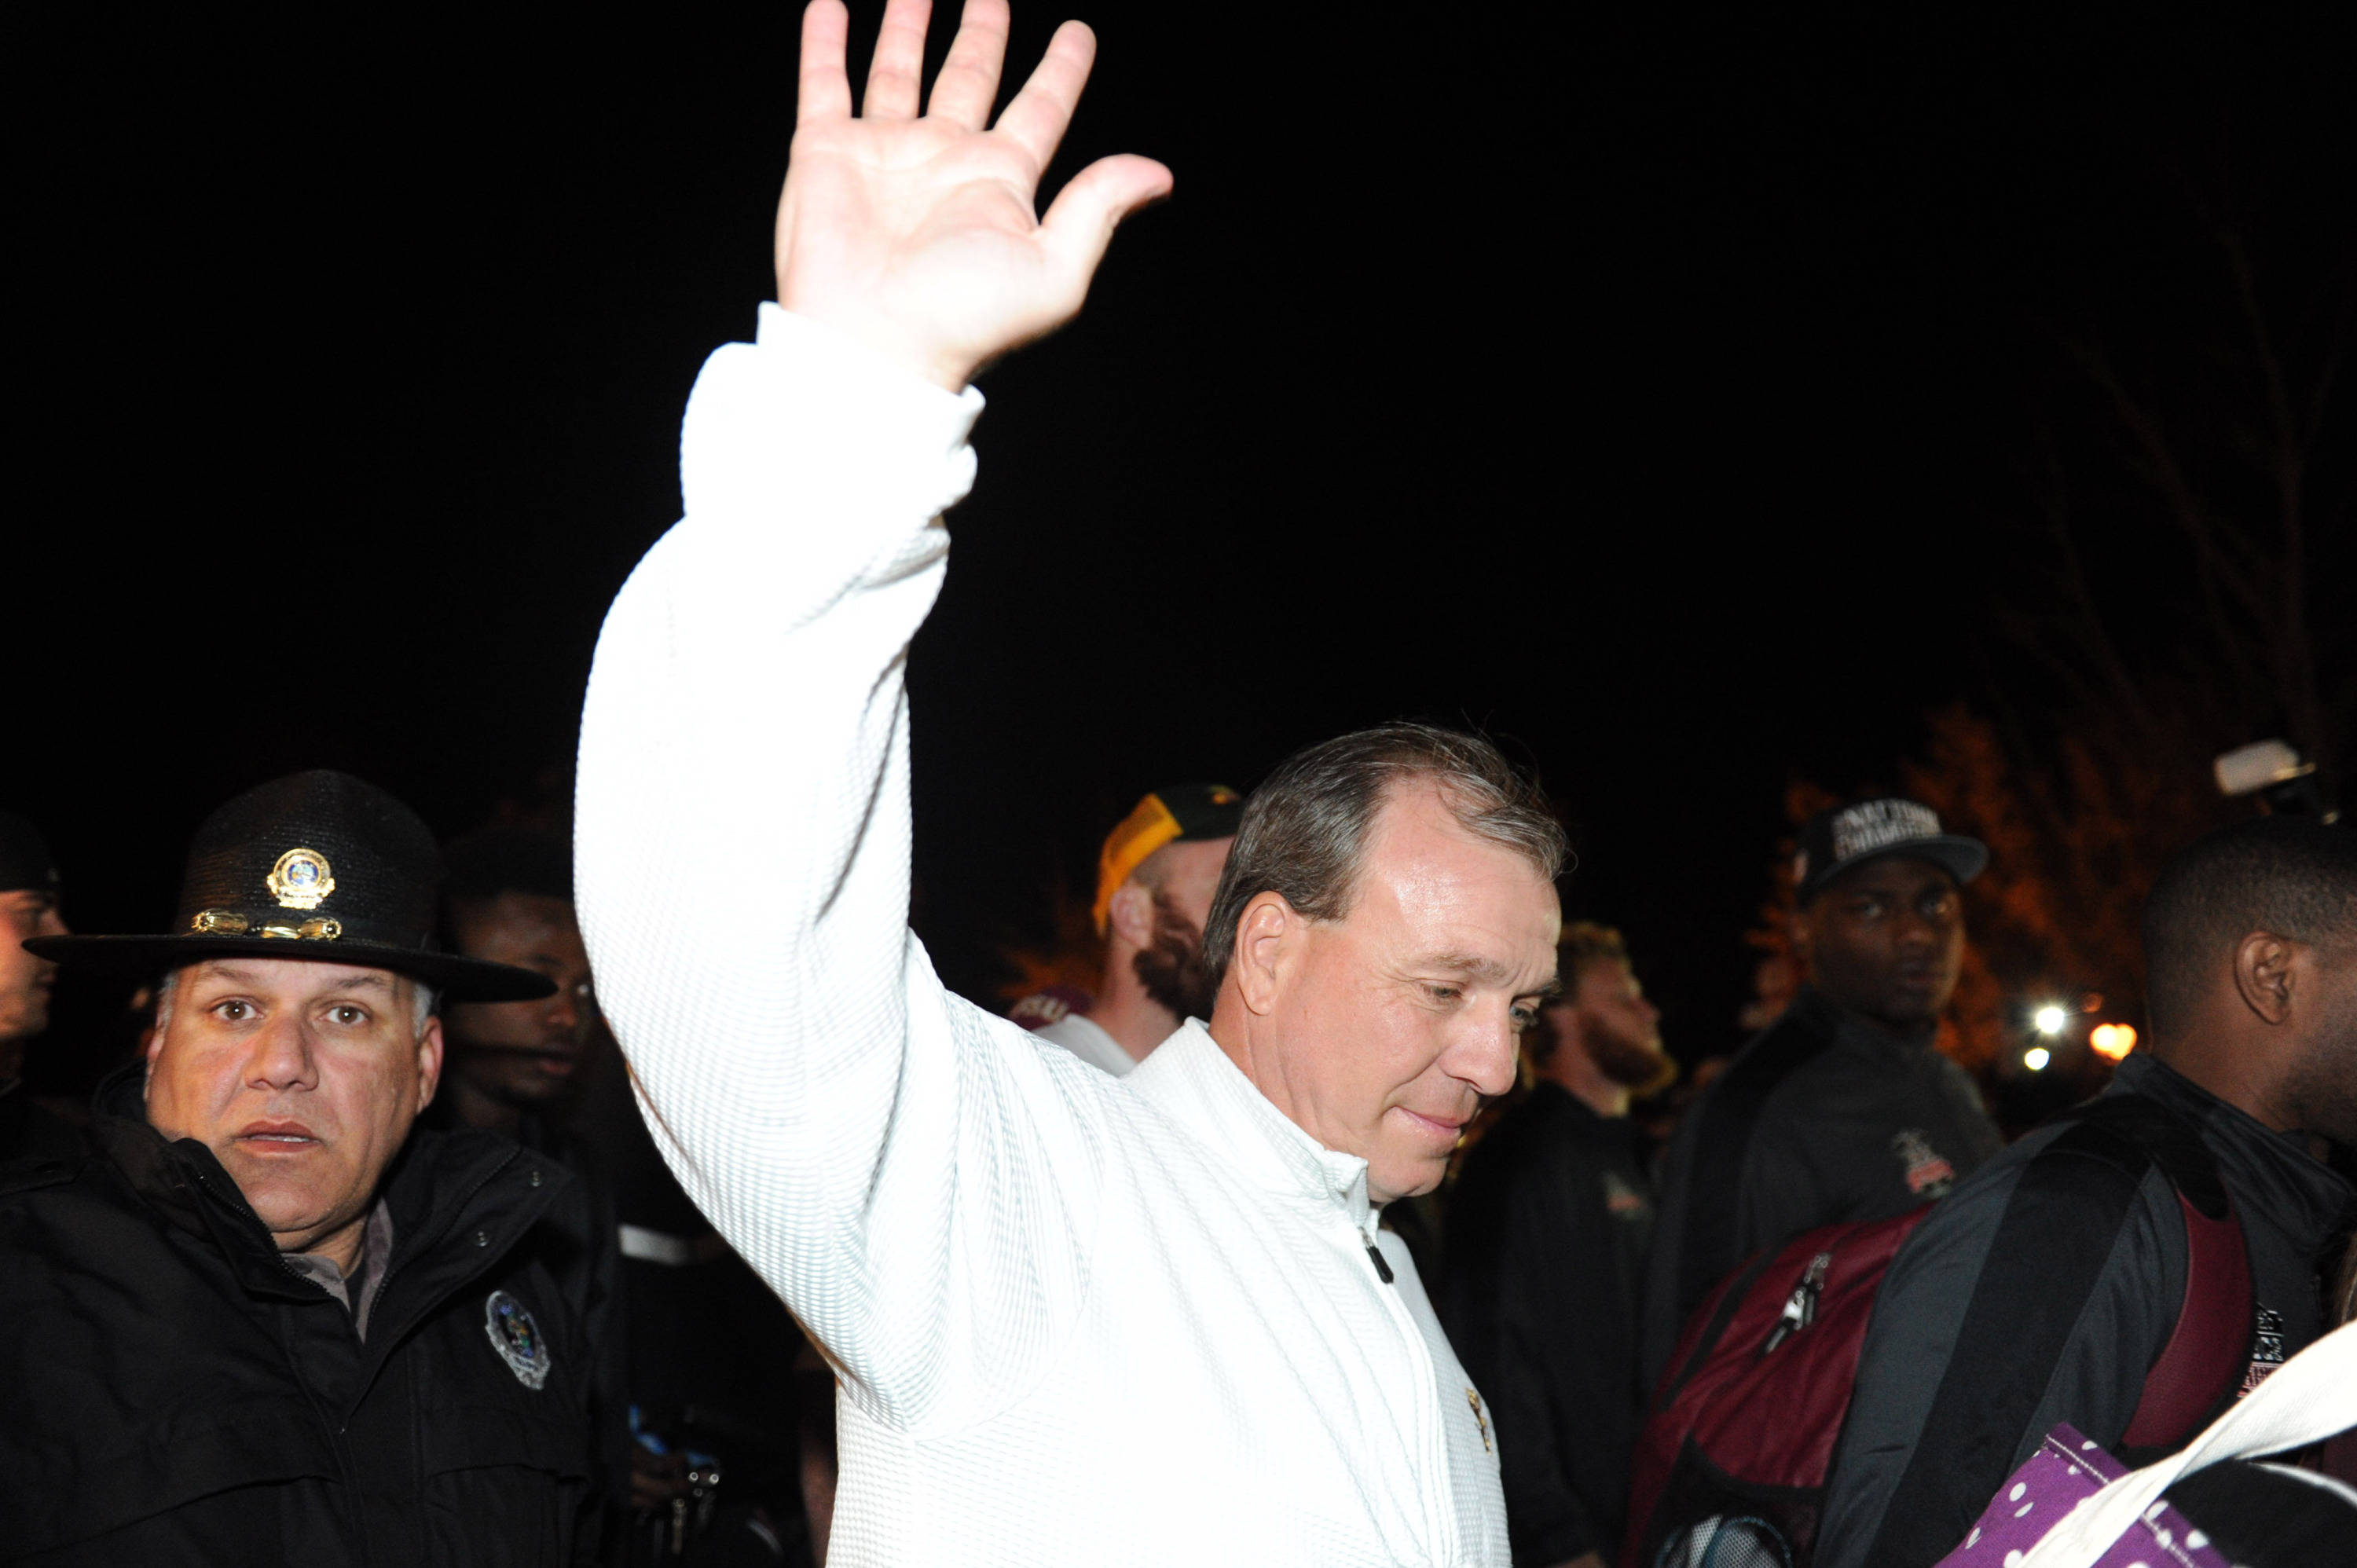 Jan 7, 2014; Tallahassee, FL, USA; Florida State Seminoles head coach Jimbo Fisher greets fans as they welcome back players to Doak Campbell Stadium after winning the BCS National Championship. Mandatory Credit: Melina Vastola-USA TODAY Sports